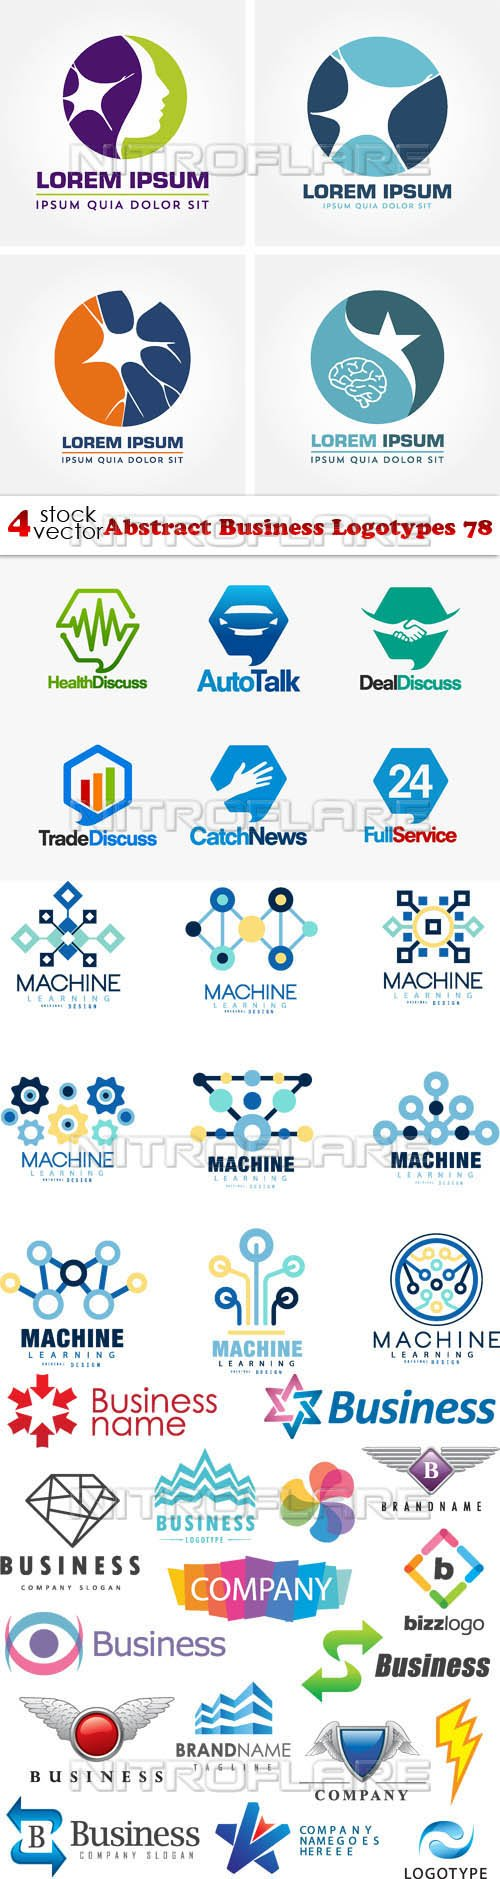 Vectors - Abstract Business Logotypes 78